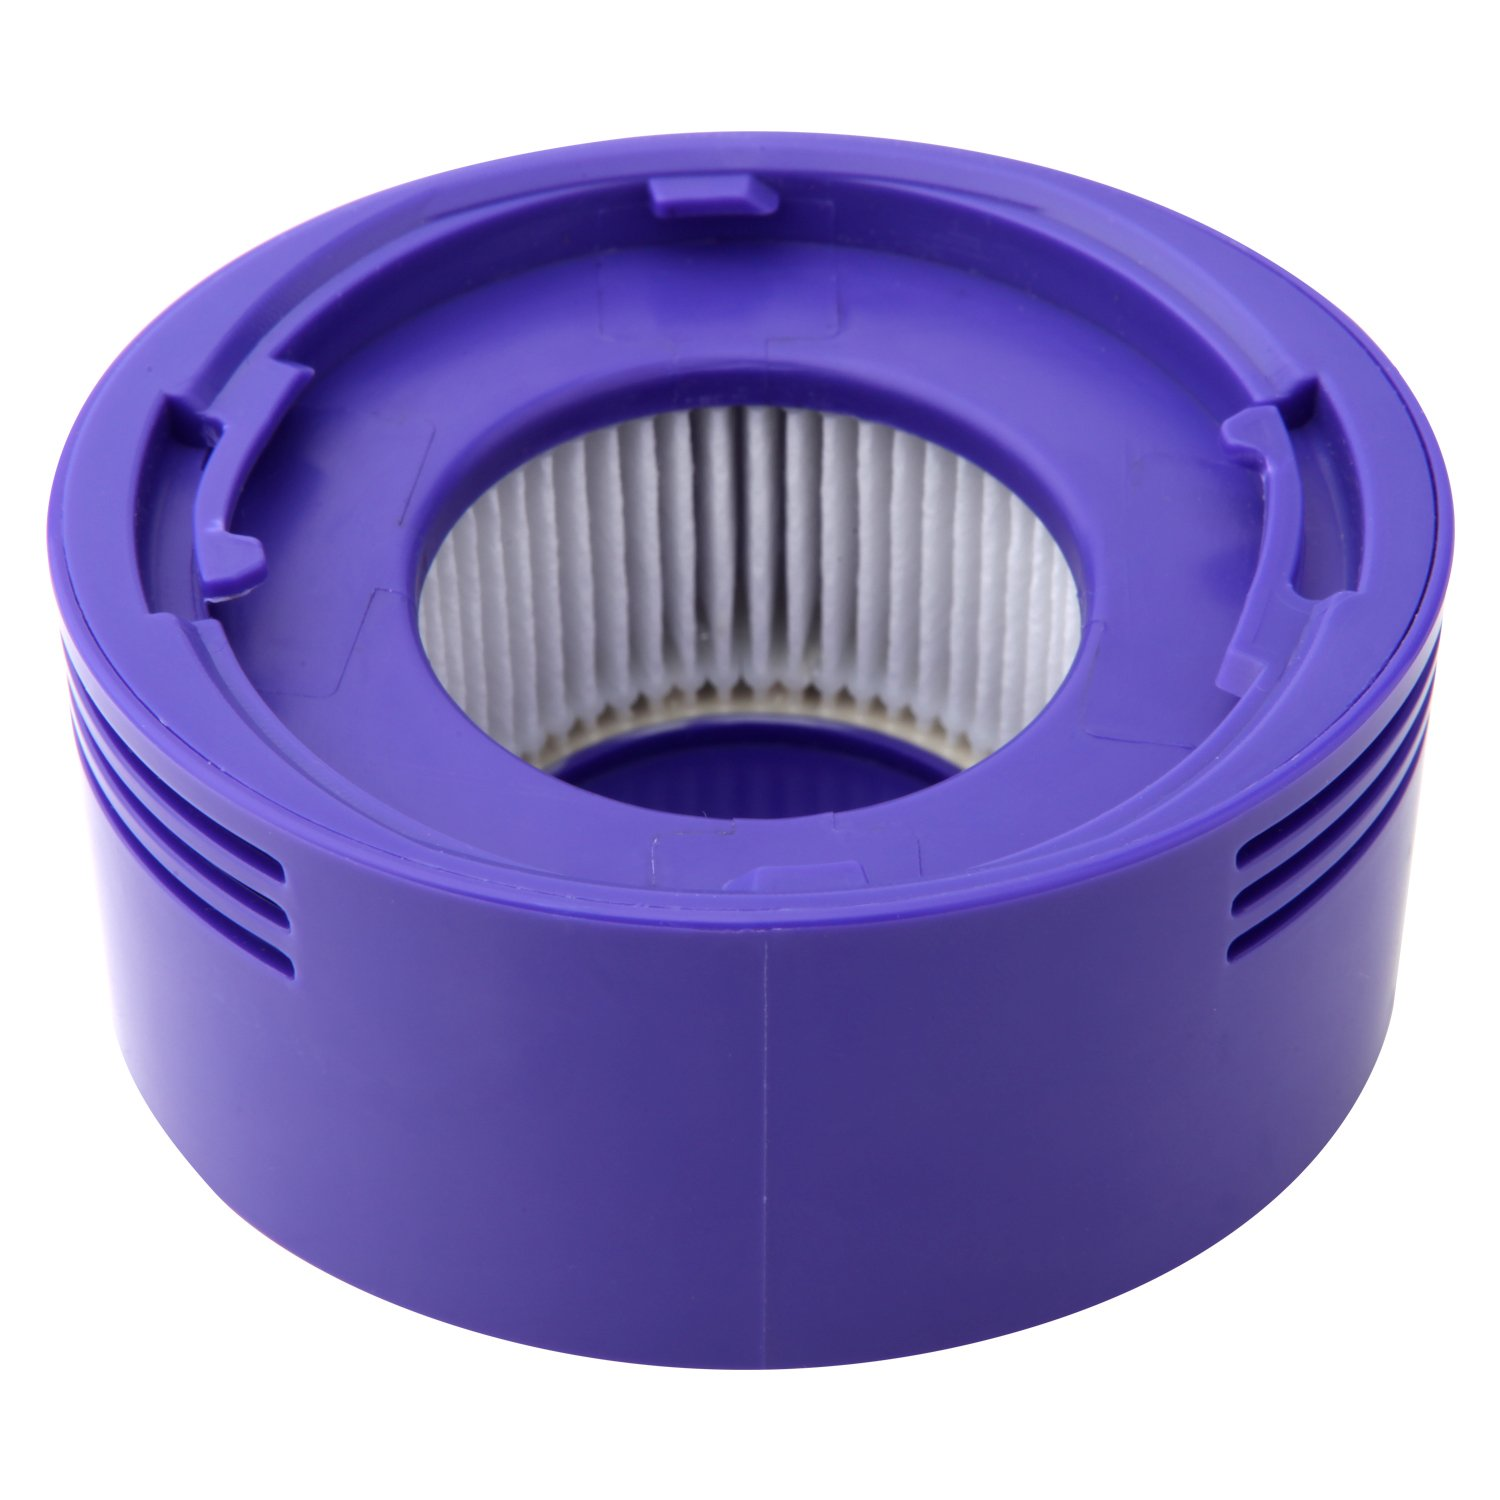 Wolf Filter 1 Pack HEPA Post Filter for Dyson V7, V8 Animal and Absolute Cordless Vacuum, Replace Part DY-96747801